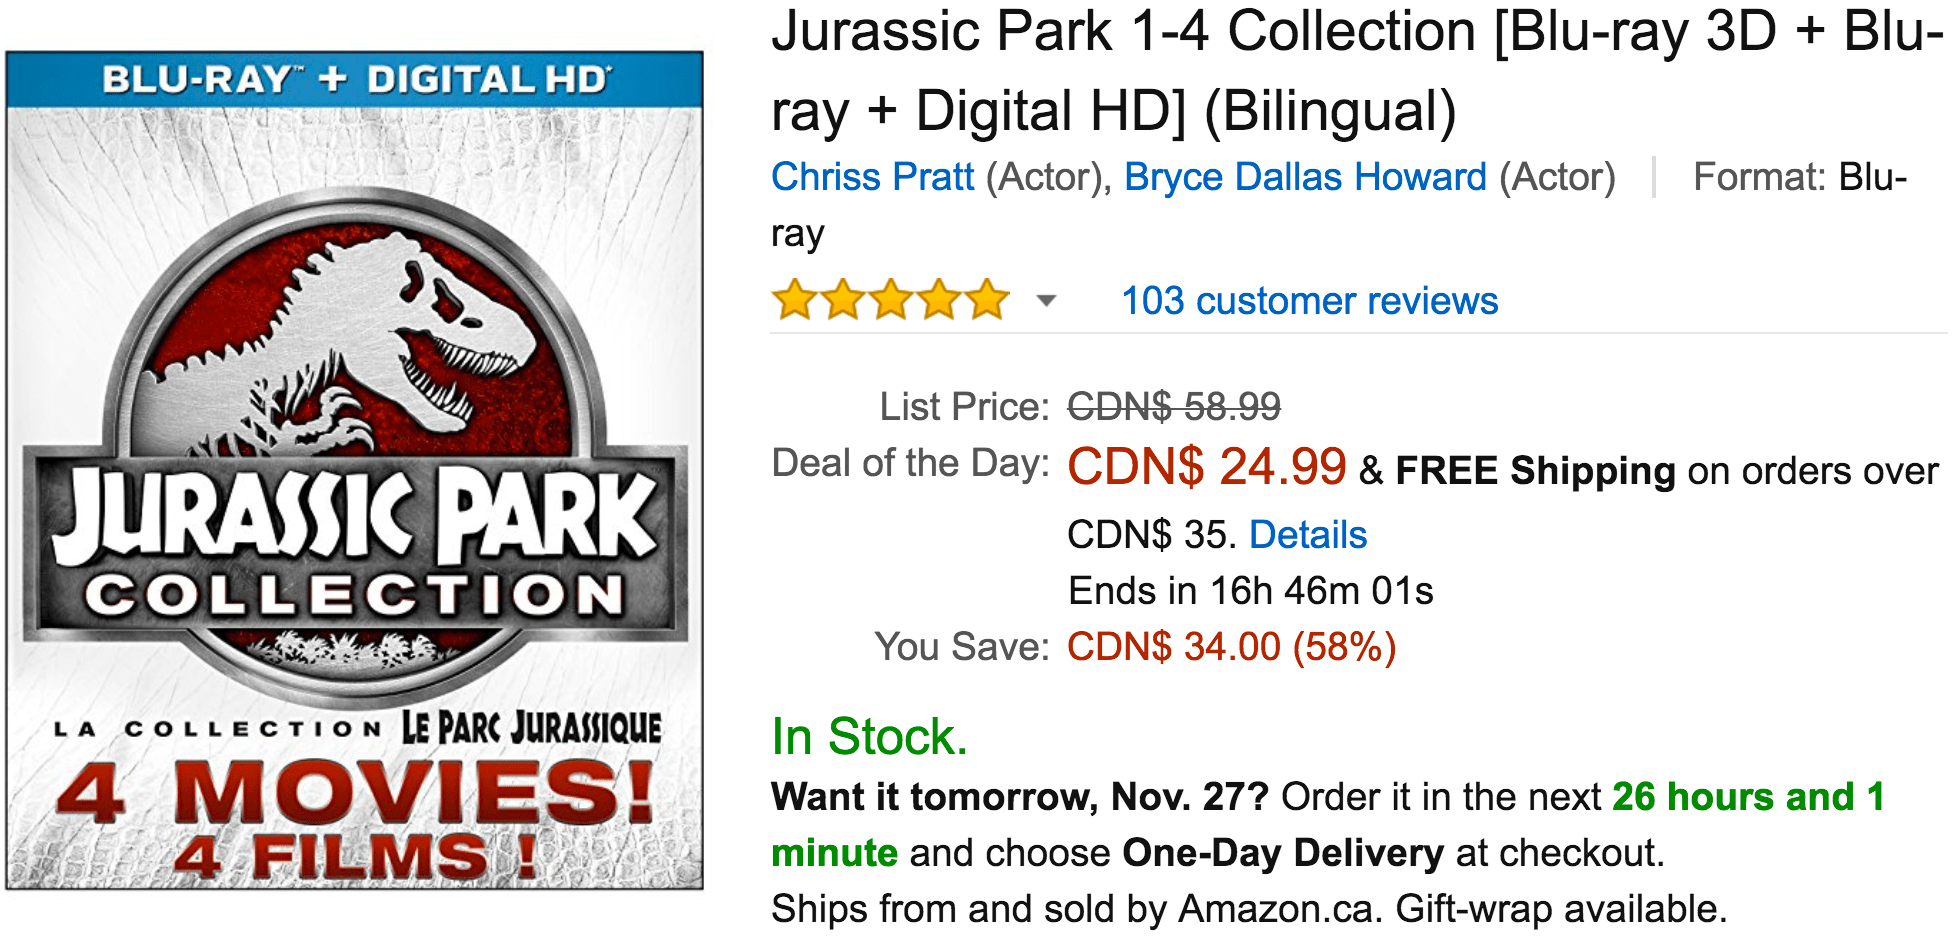 Amazon Canada Black Friday Deals: Save 58% Off Jurassic Park 1-4 Collection, 25% on Xbox One S 500GB Console – FIFA 17 Bundle & More Offers